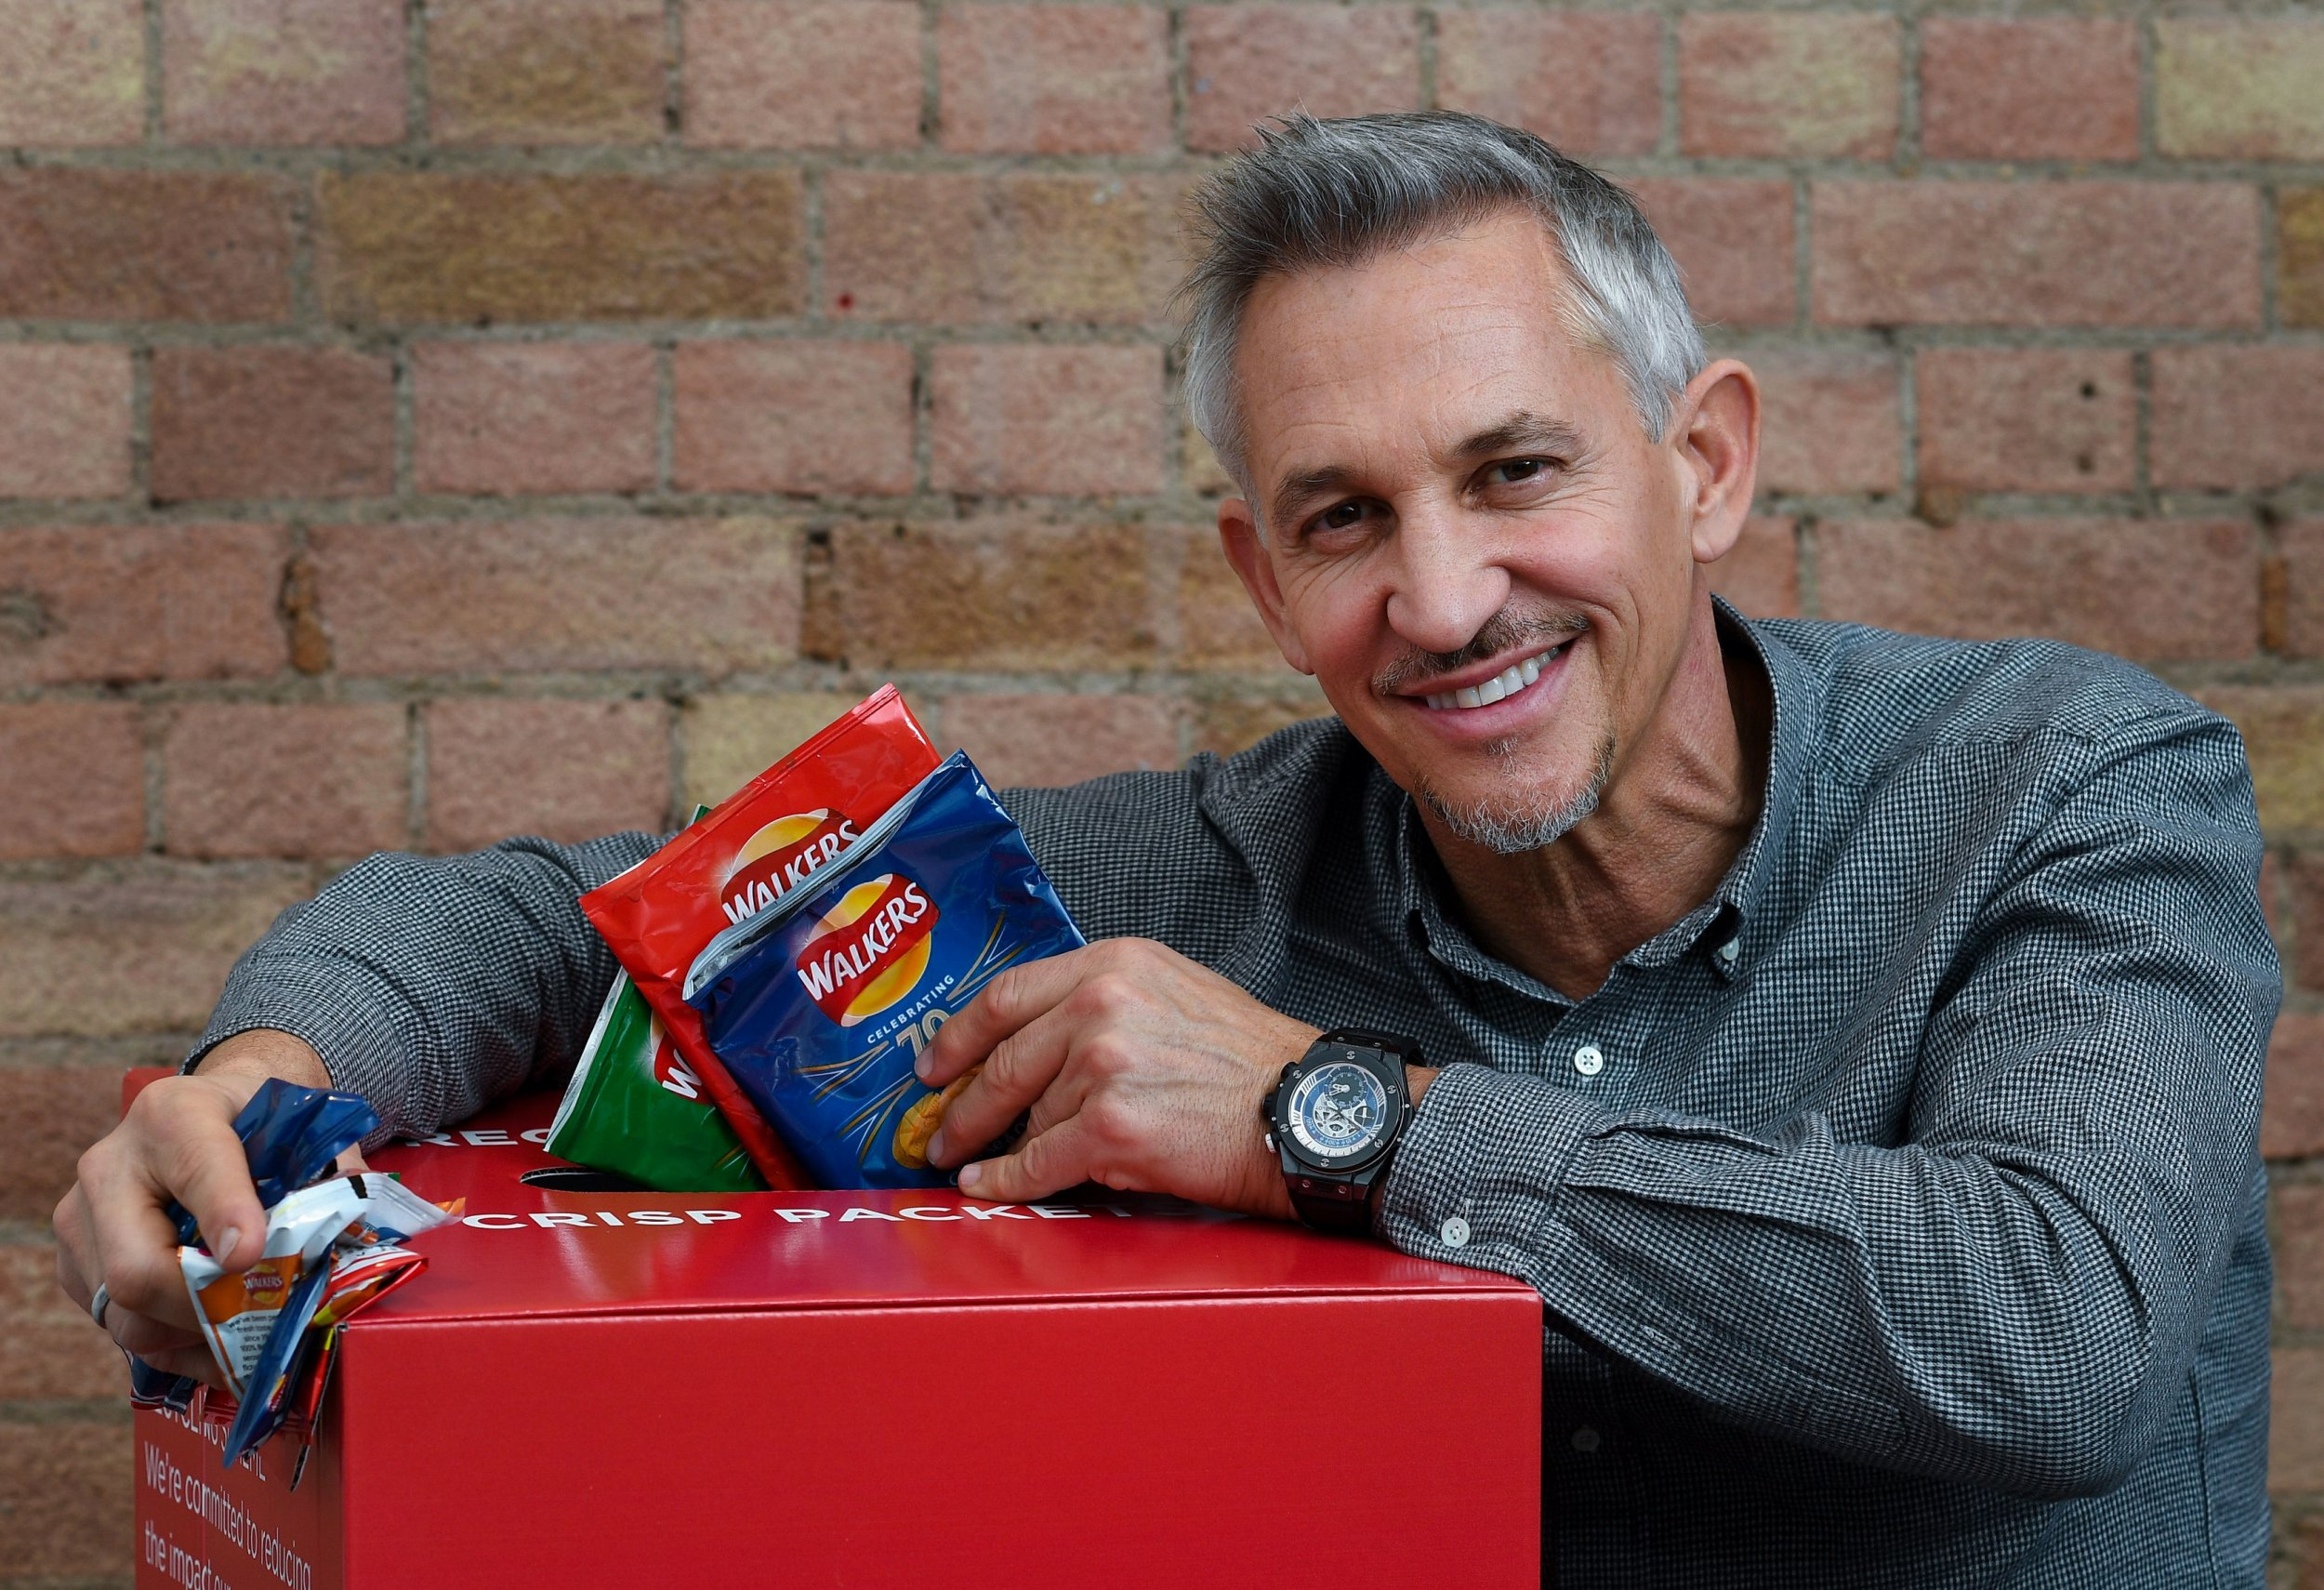 MANDATORY CREDIT: Andrew Parsons/Parsons Media Undated Walkers handout photo of Gary Lineker giving his backing to the Walkers crisp packet recycling scheme. Walkers has won the backing of Environment Secretary Michael Gove as it launches a recycling scheme in response to a public campaign against plastic waste. PRESS ASSOCIATION Photo. Issue date: Monday December 10, 2018. See PA story CONSUMER Crisps. Photo credit should read: Andrew Parsons/Parsons Media/PA Wire NOTE TO EDITORS: This handout photo may only be used in for editorial reporting purposes for the contemporaneous illustration of events, things or the people in the image or facts mentioned in the caption. Reuse of the picture may require further permission from the copyright holder.